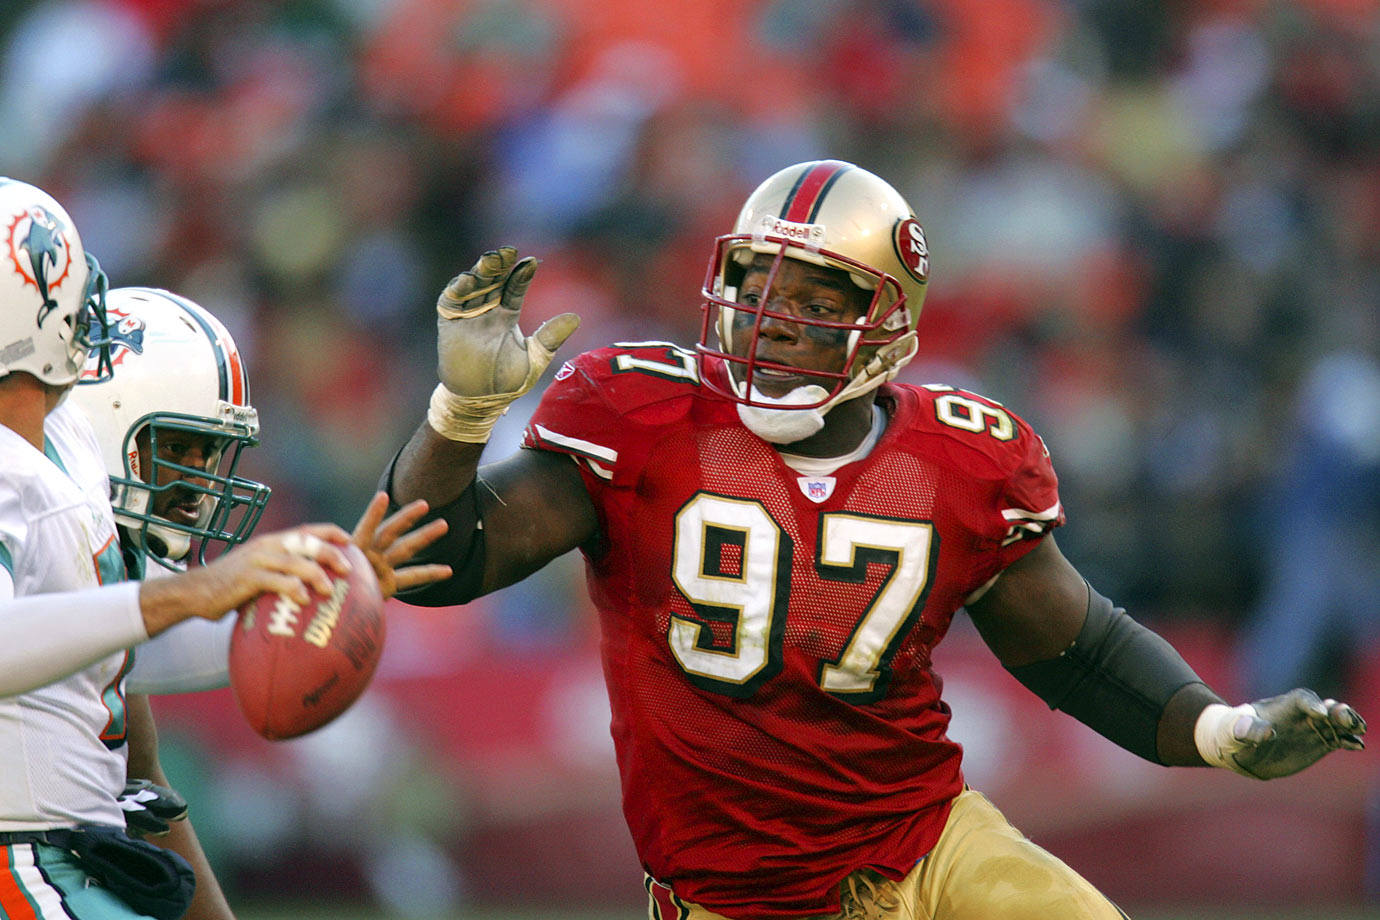 The 49ers won the last of their five Super Bowls in Young's rookie season, and the first-round pick played an important part with six regular-season sacks and another in the playoffs. He would top 10 sacks in two different seasons and end his career with 89.5. Only Warren Sapp, John Randle and Trevor Pryce have more career sacks among full-time tackles.